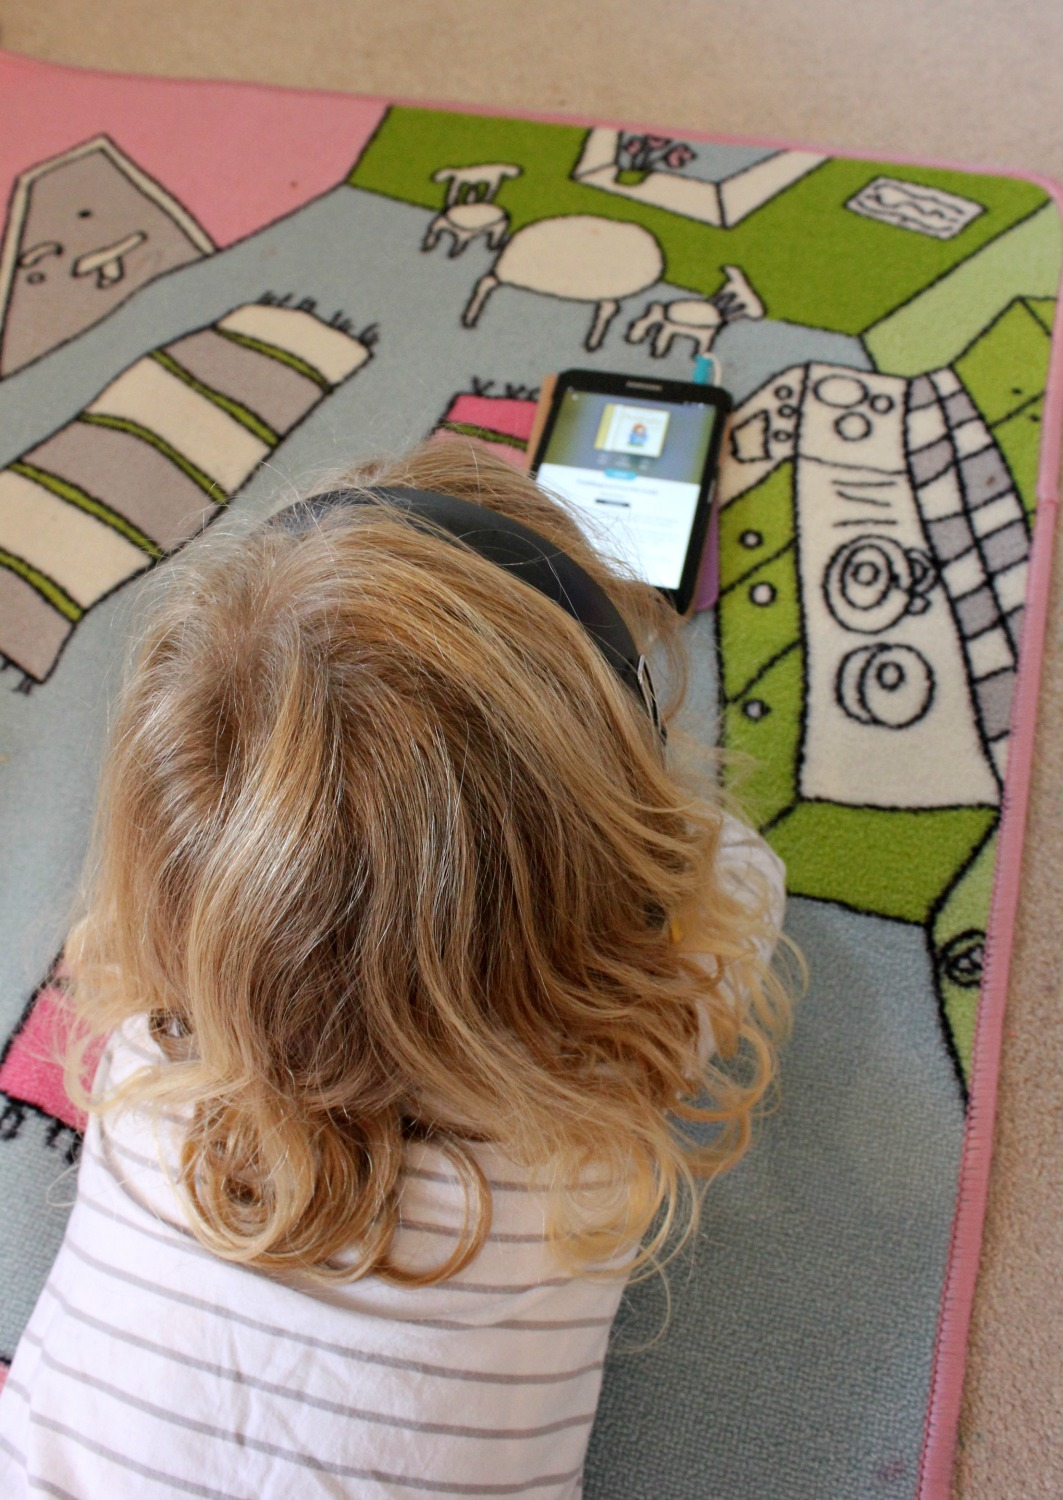 My daughter sits and listens to a story on the BookBeat app on a tablet